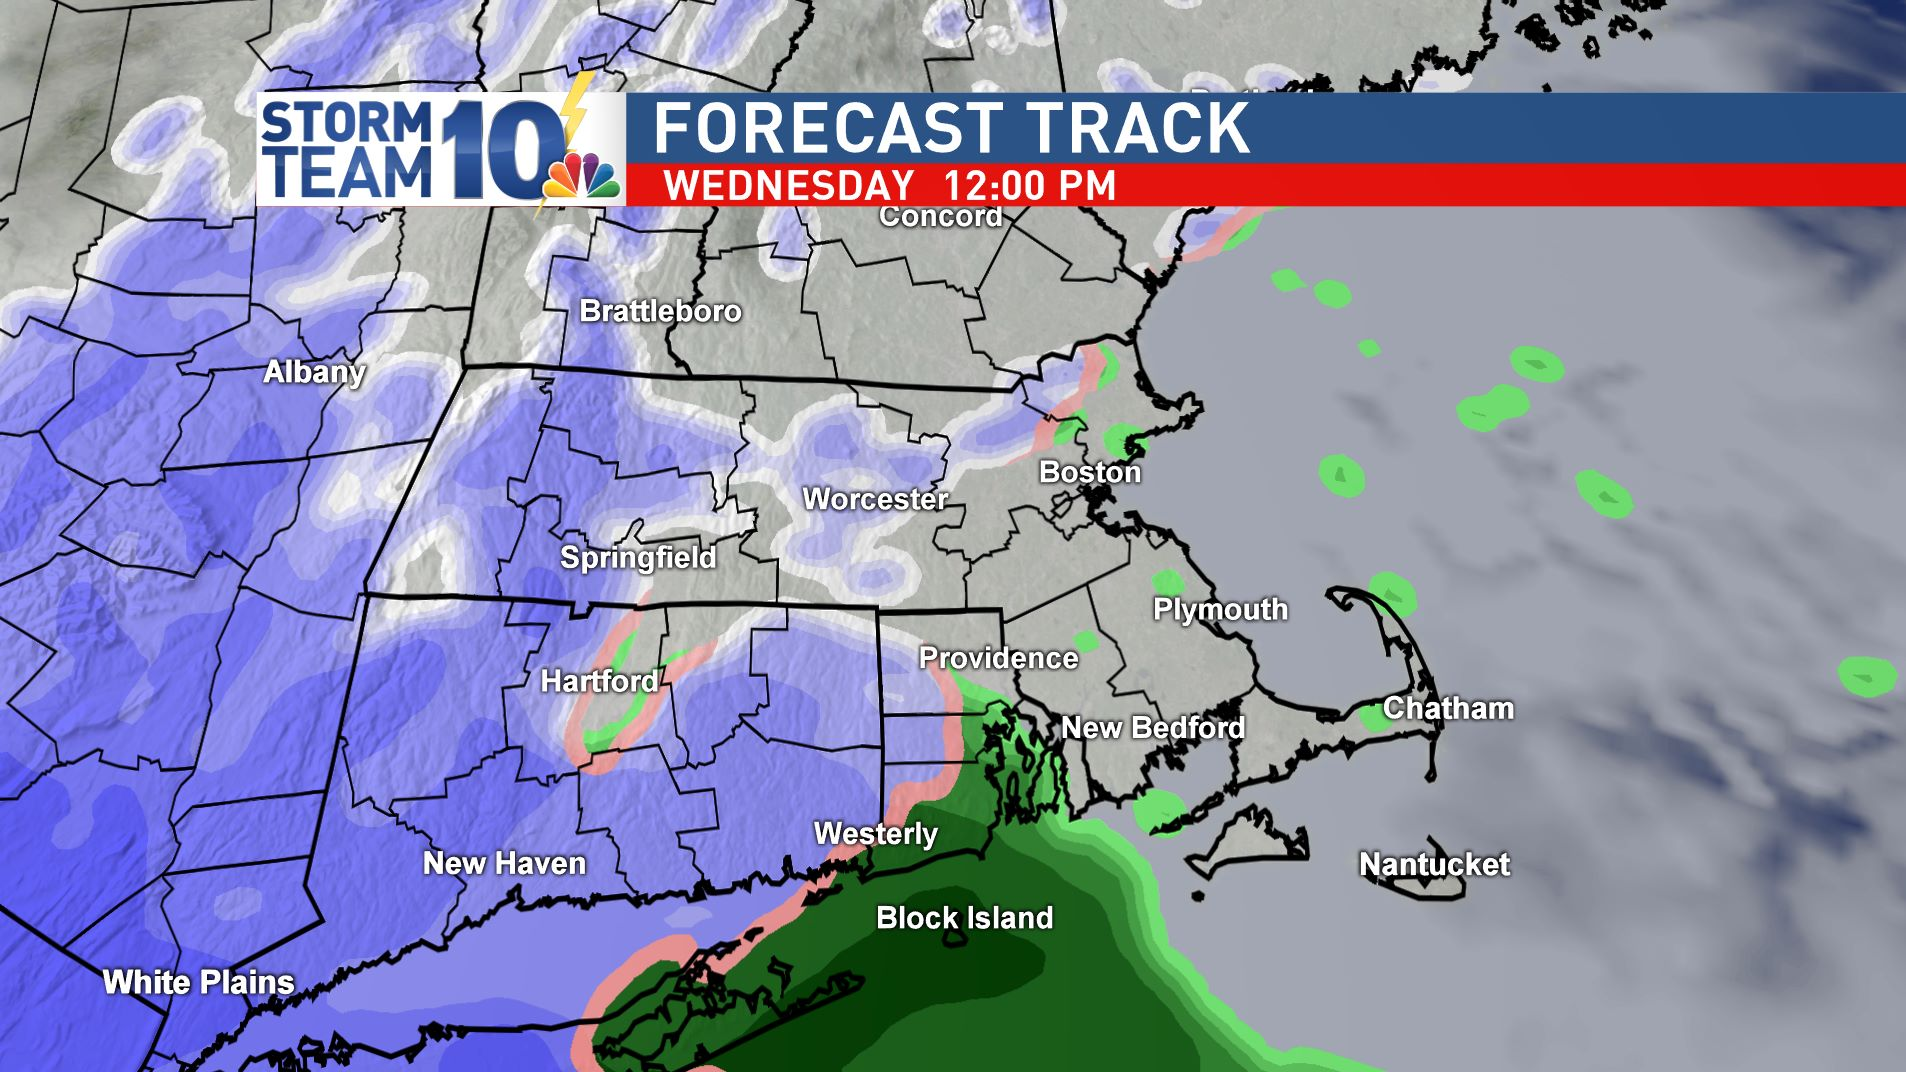 Snow and rain develops between 10am and noon Wednesday